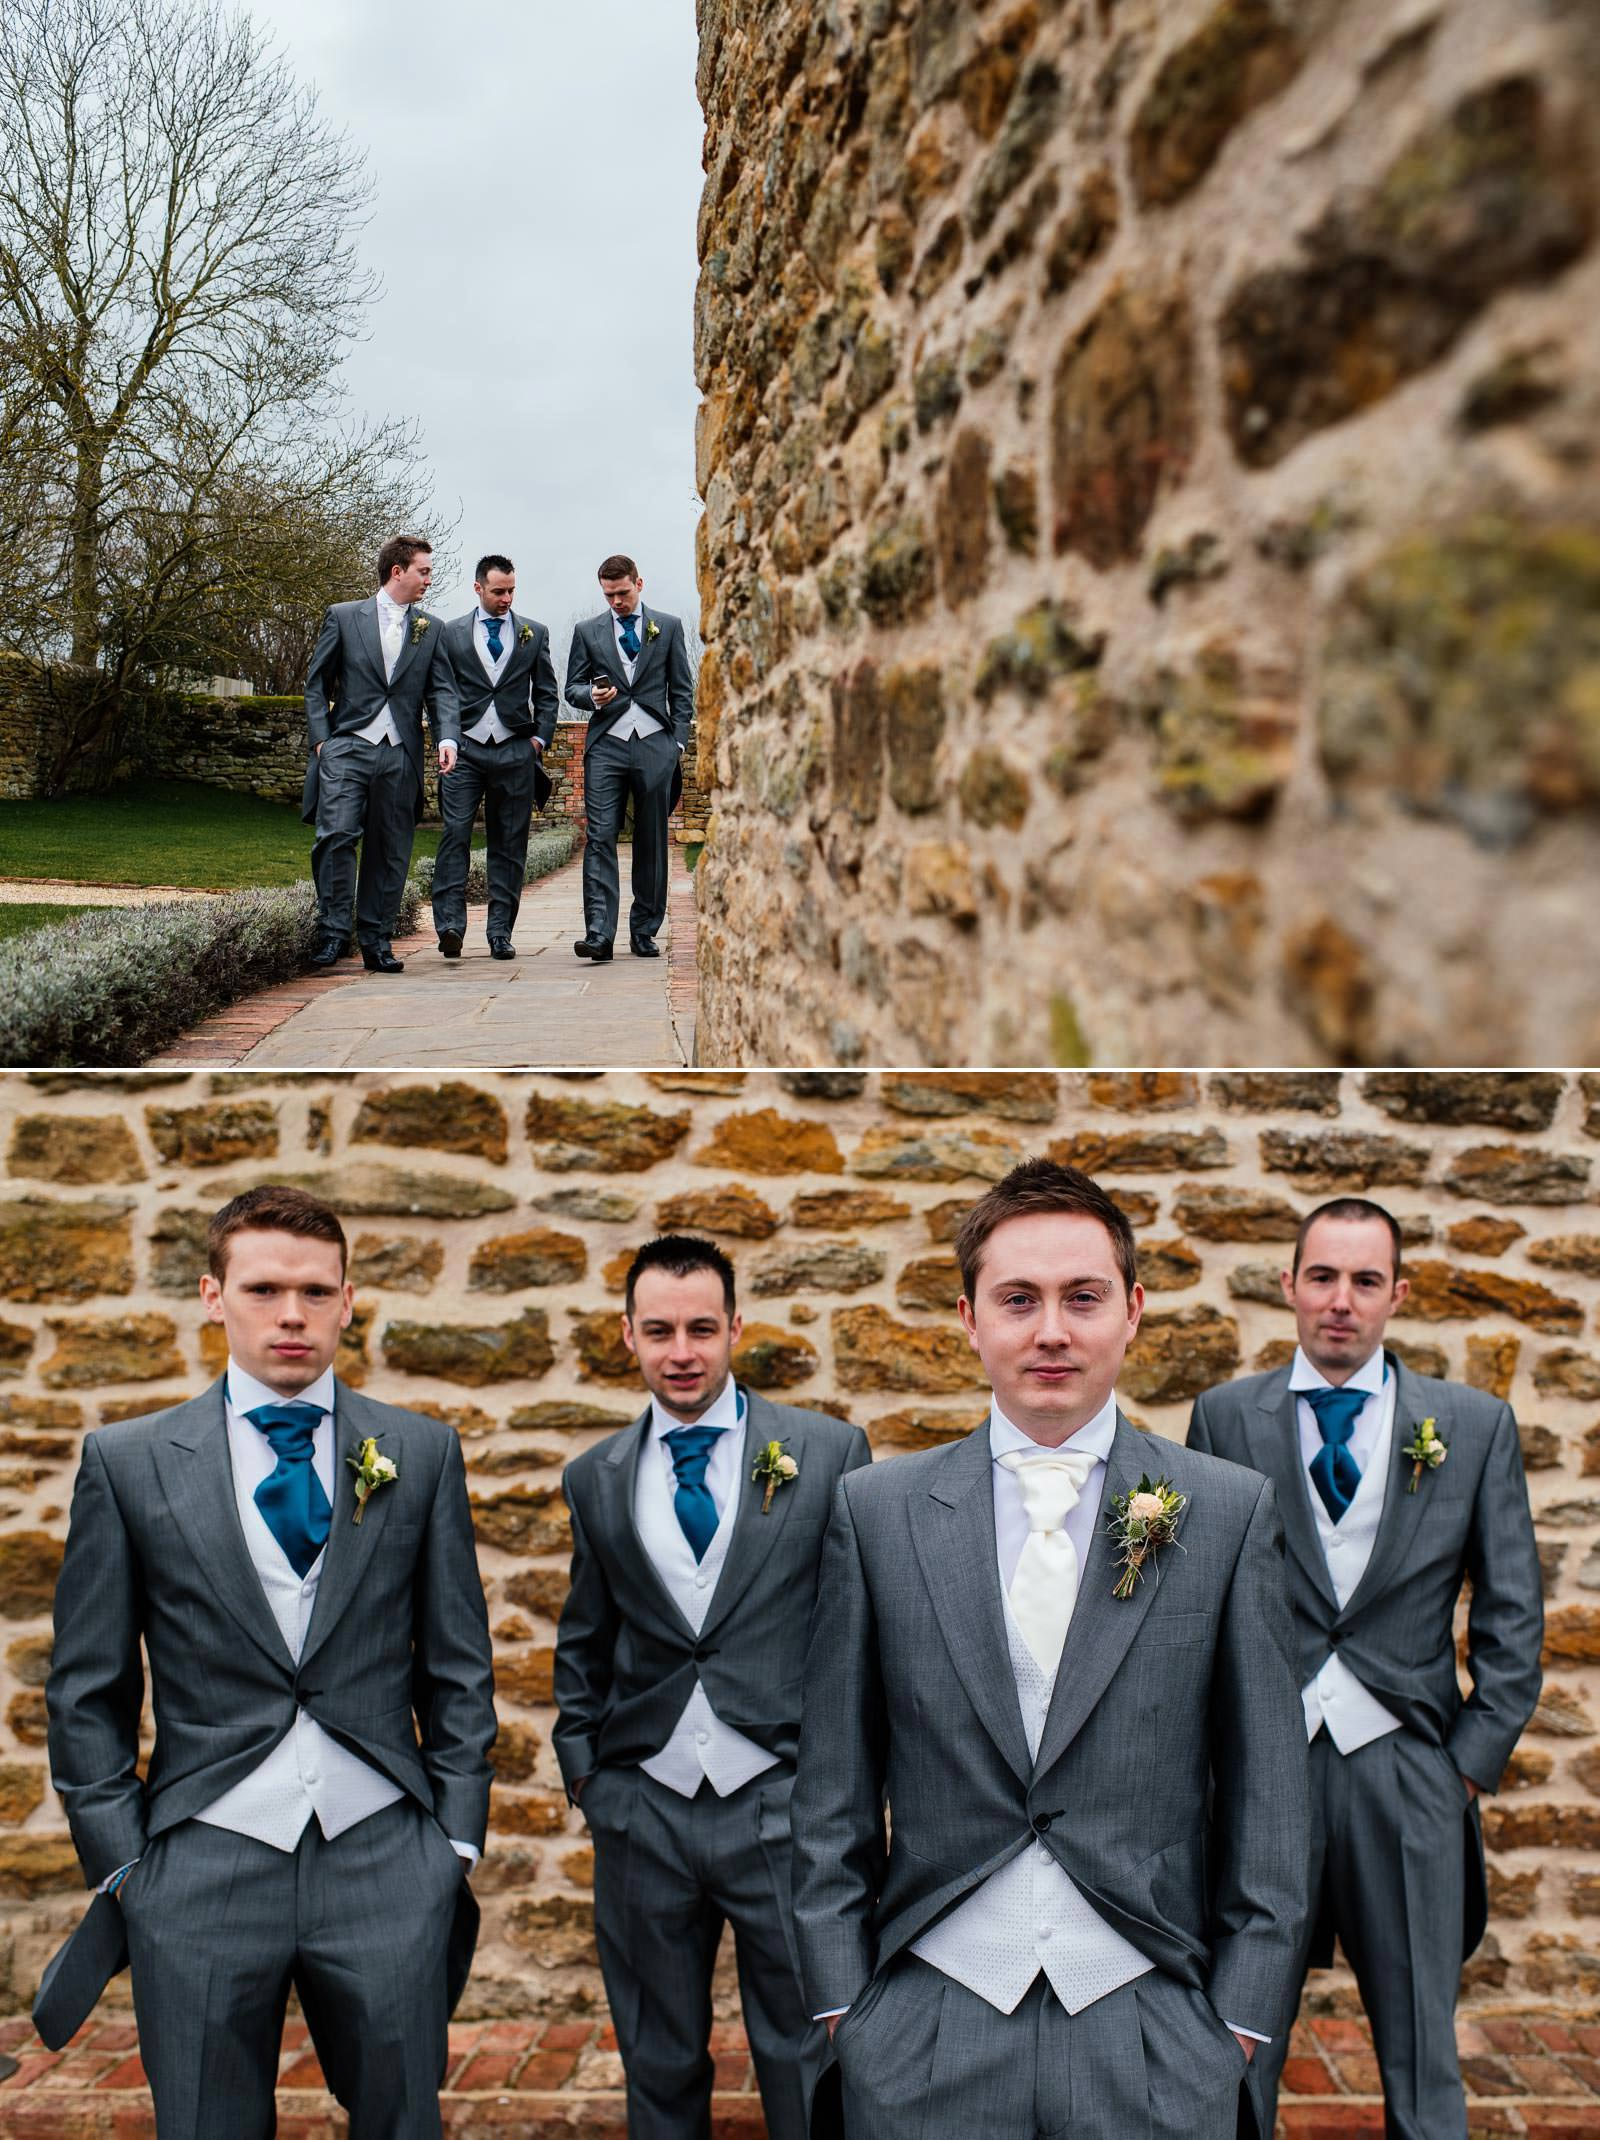 Dodford Manor Wedding Photographer 0005